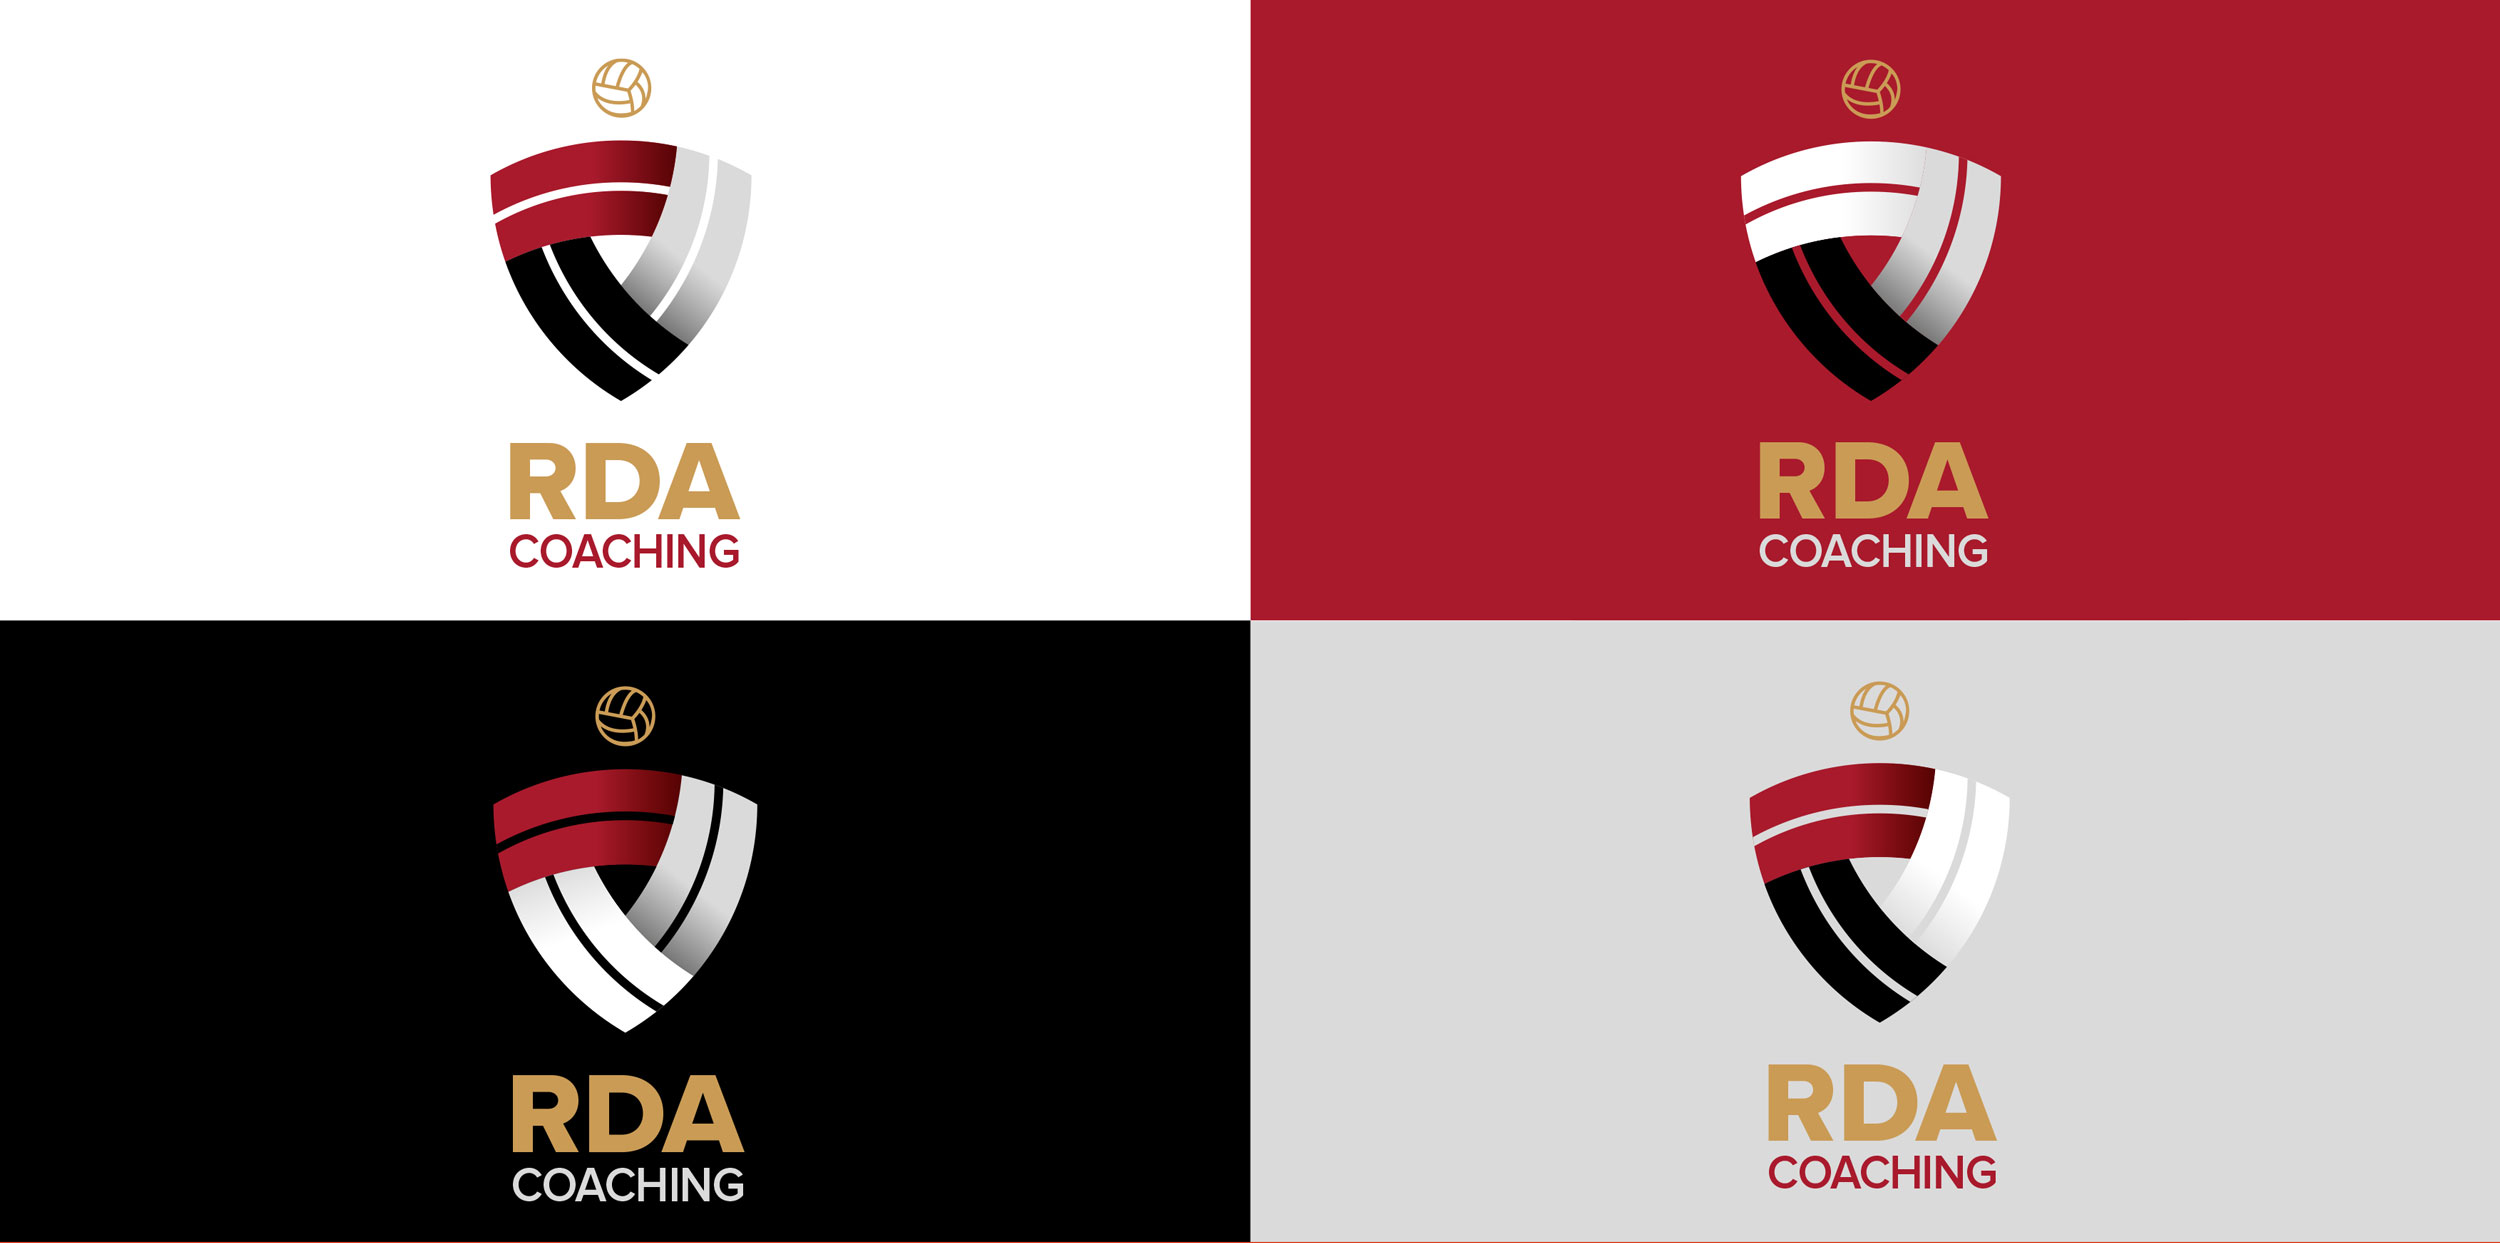 RDA Logos on Colour